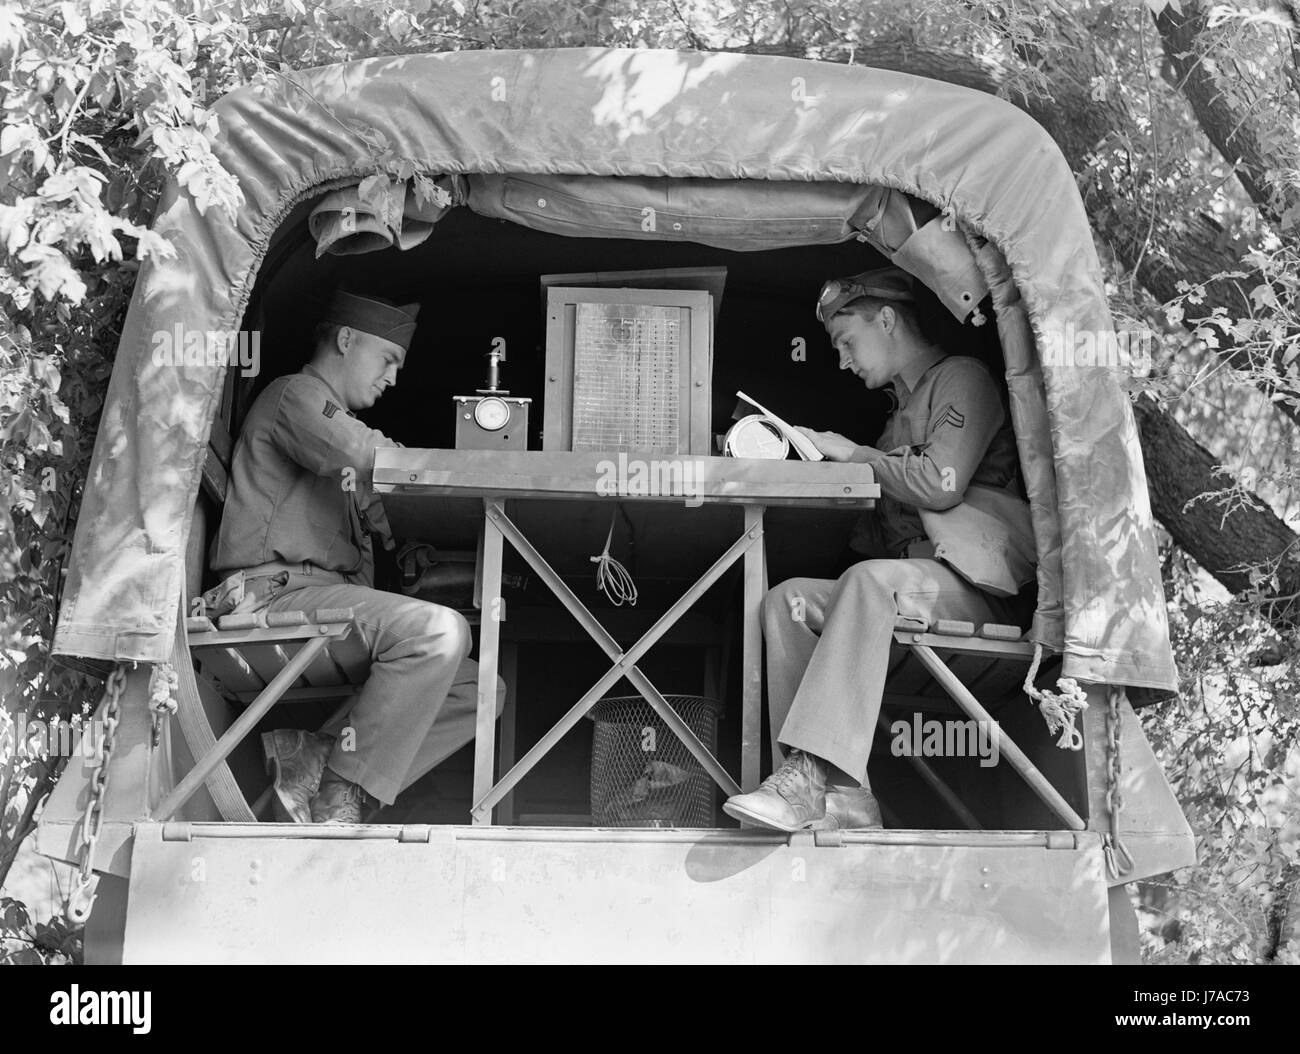 Signal Corps message center set up during a field problem at Fort Riley, Kansas, 1942. - Stock Image